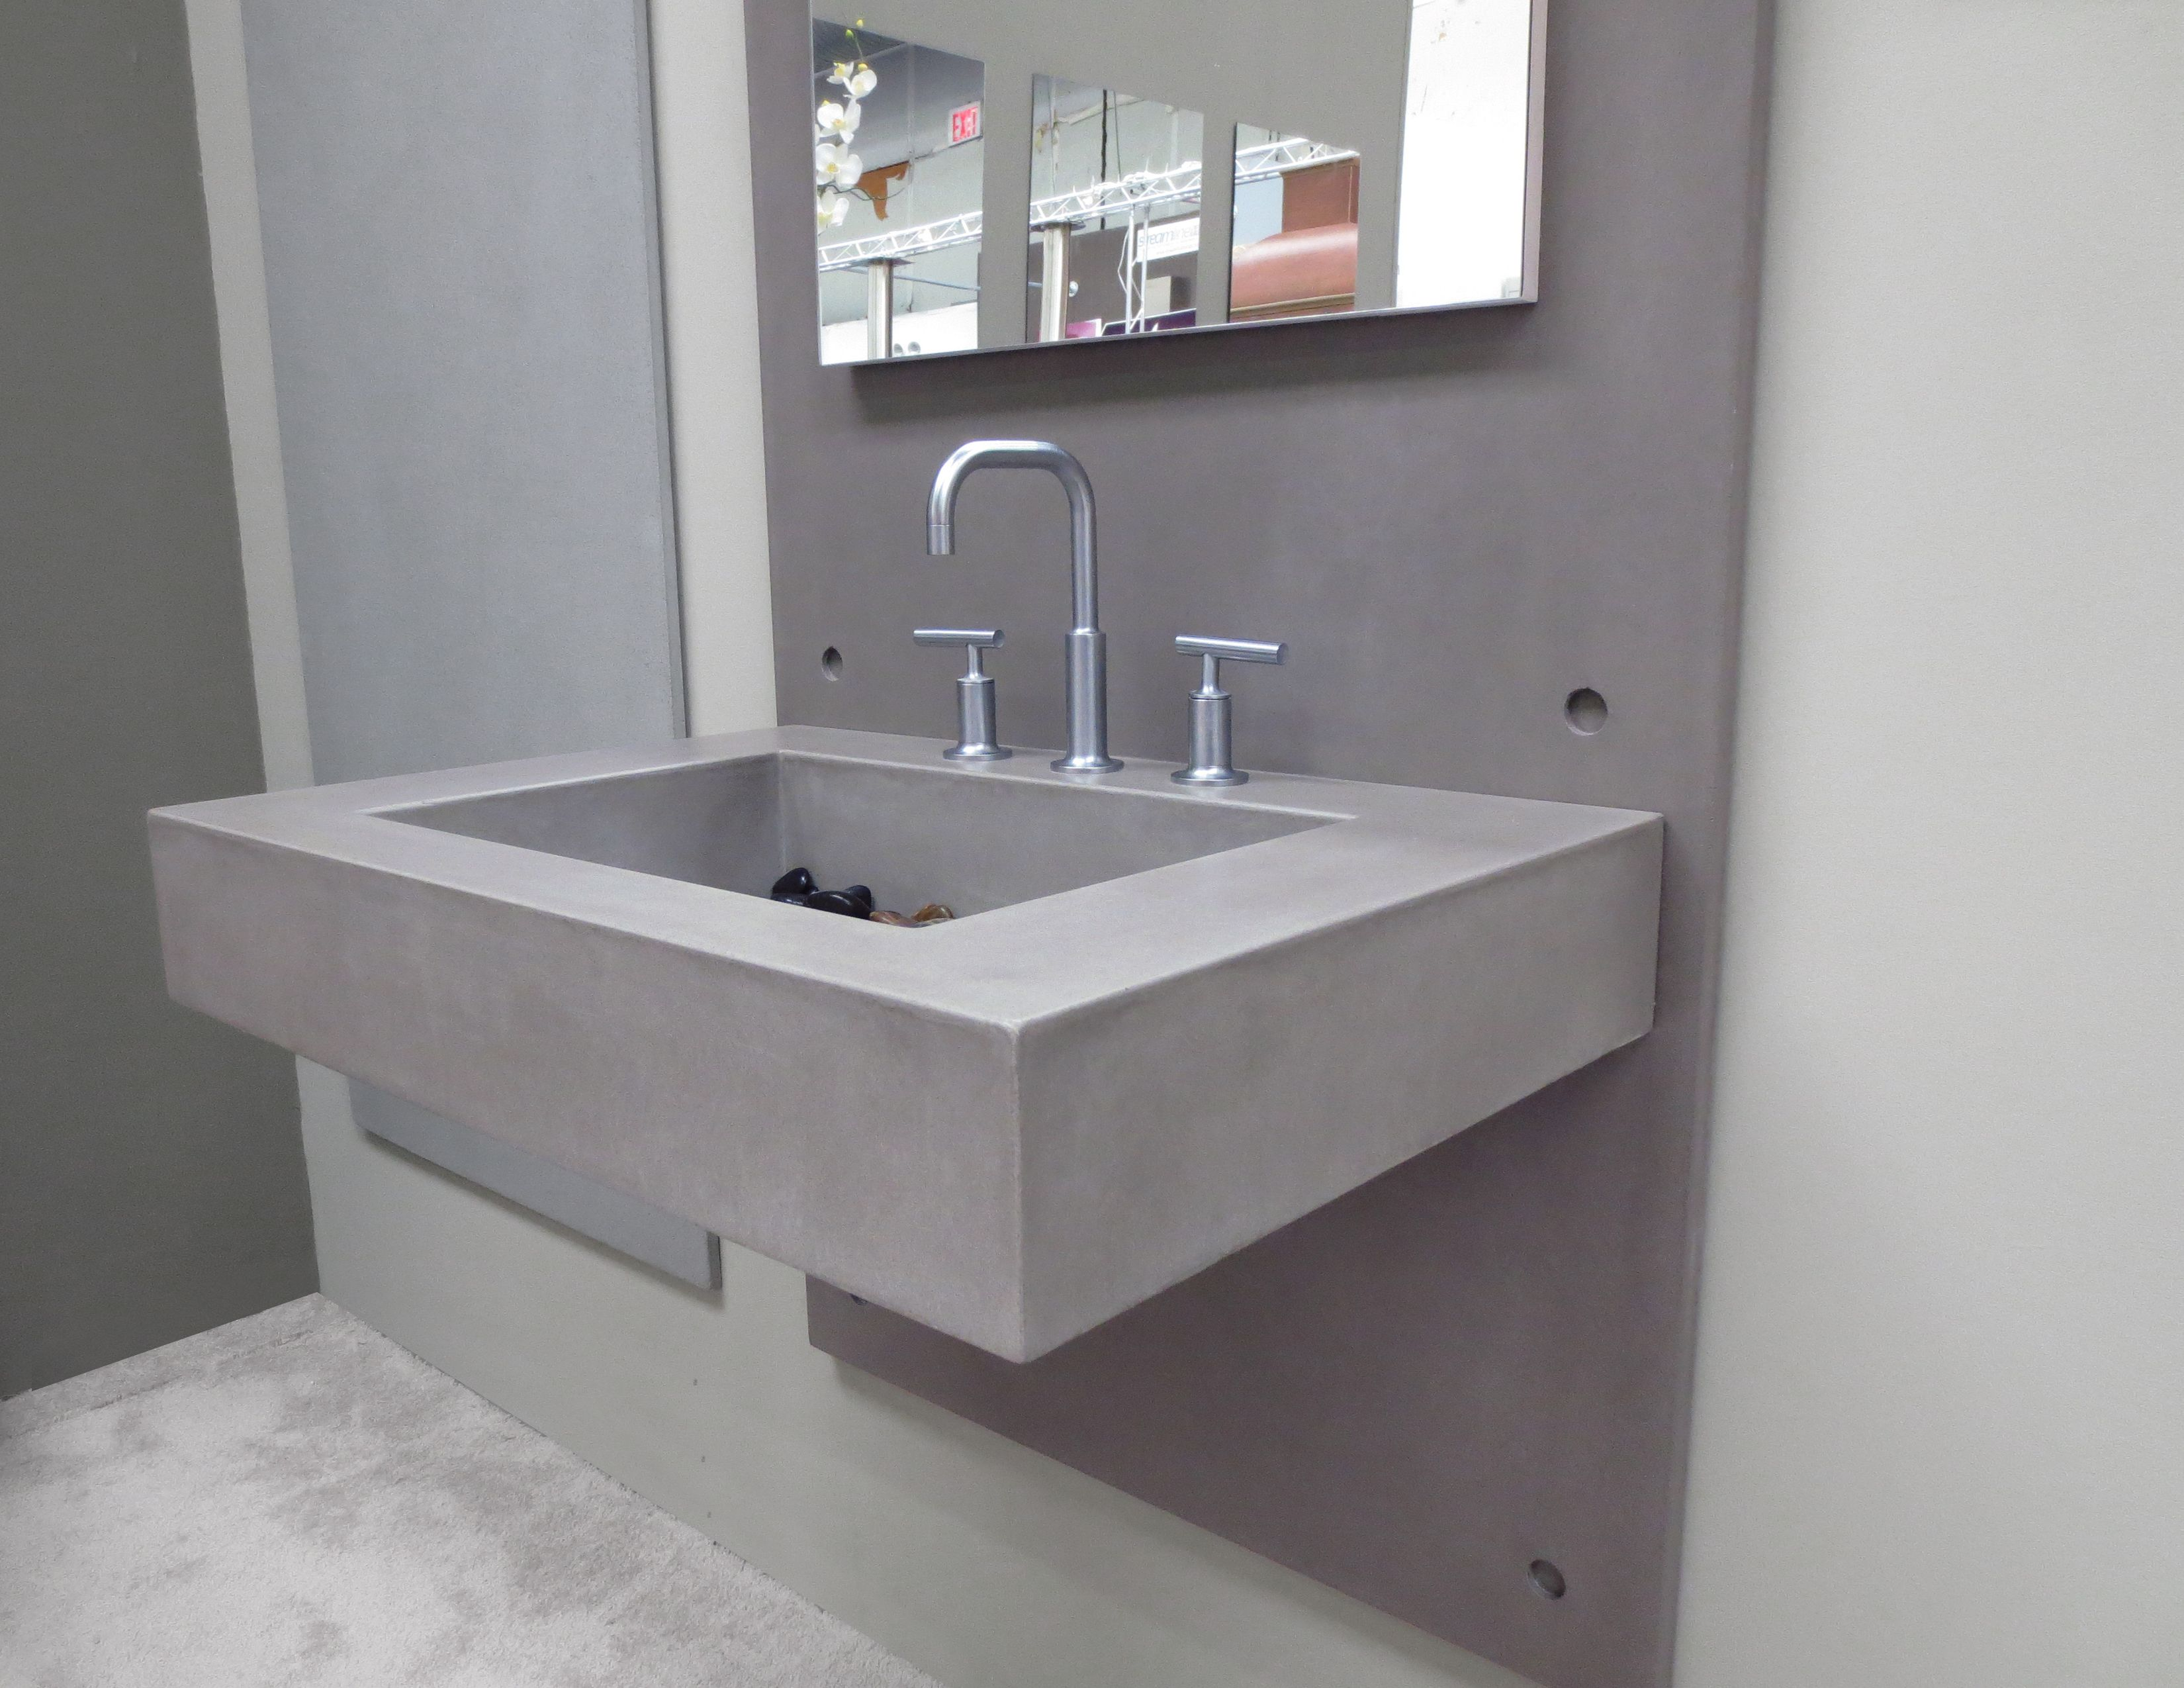 Wall Mount Sink   ADA Concrete Bathroom Sink By Trueform Concrete  #TrueformConcrete #OurSinks